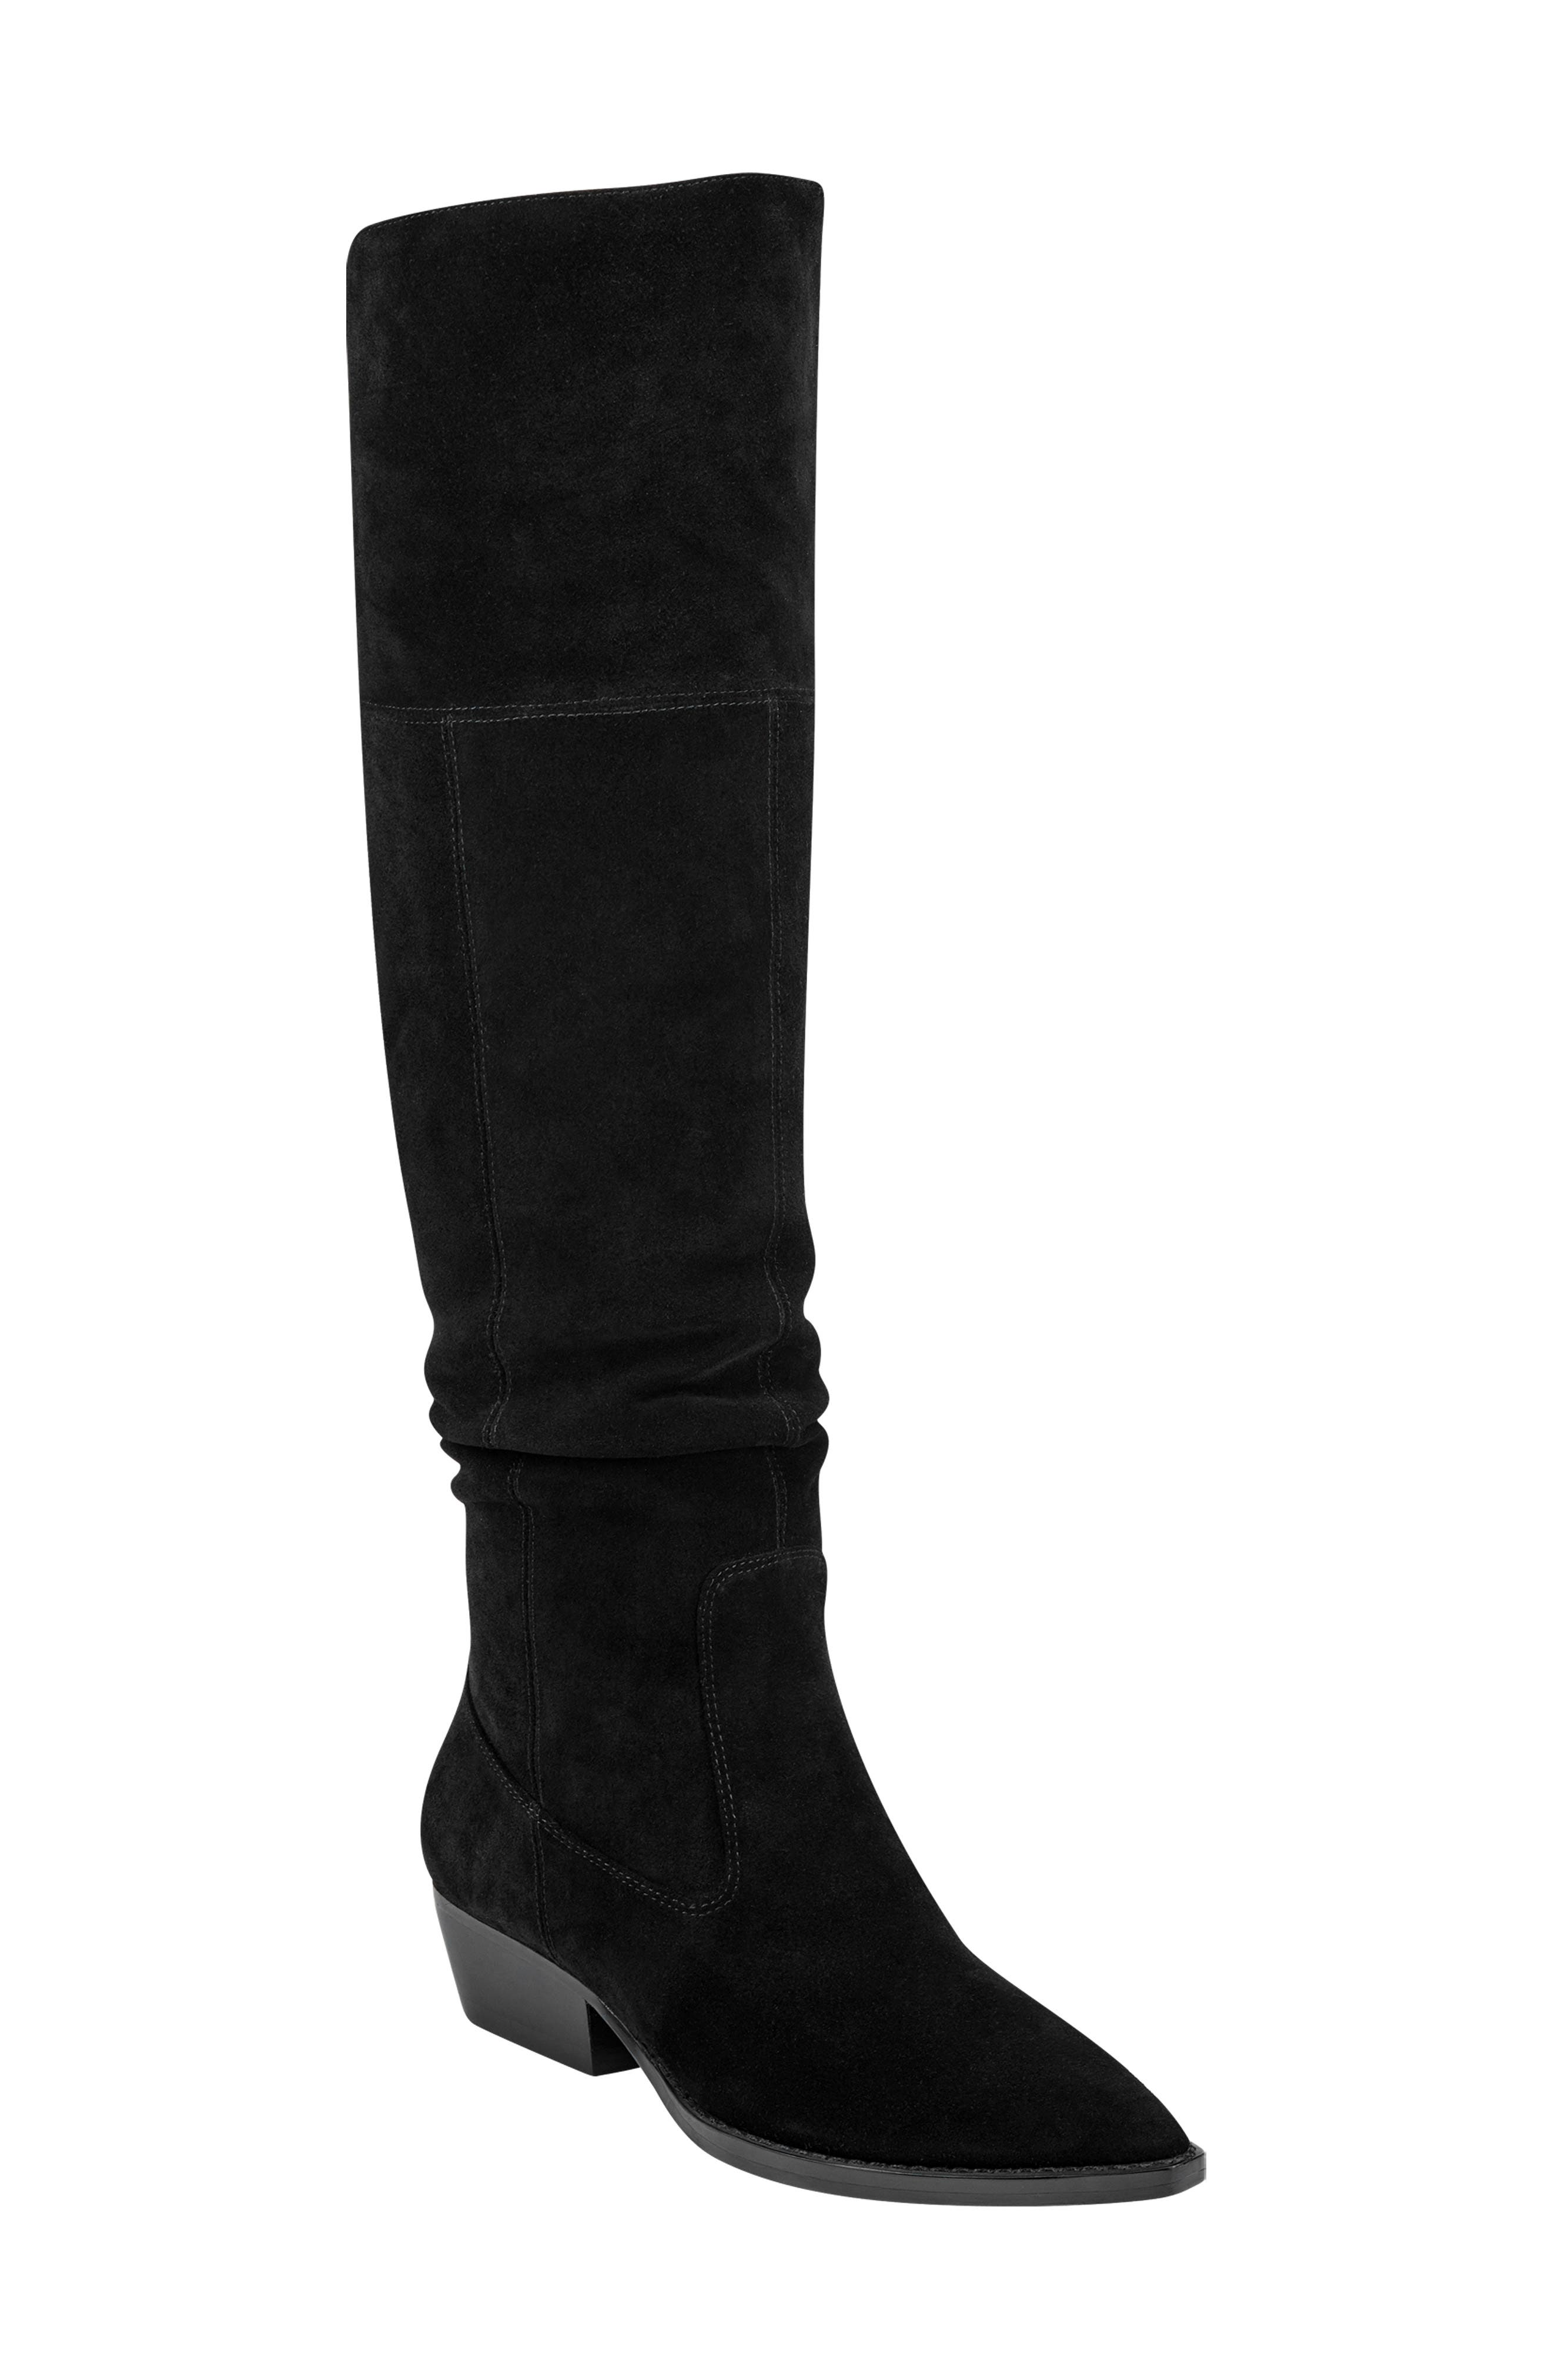 Over,the,Knee Boots for Women